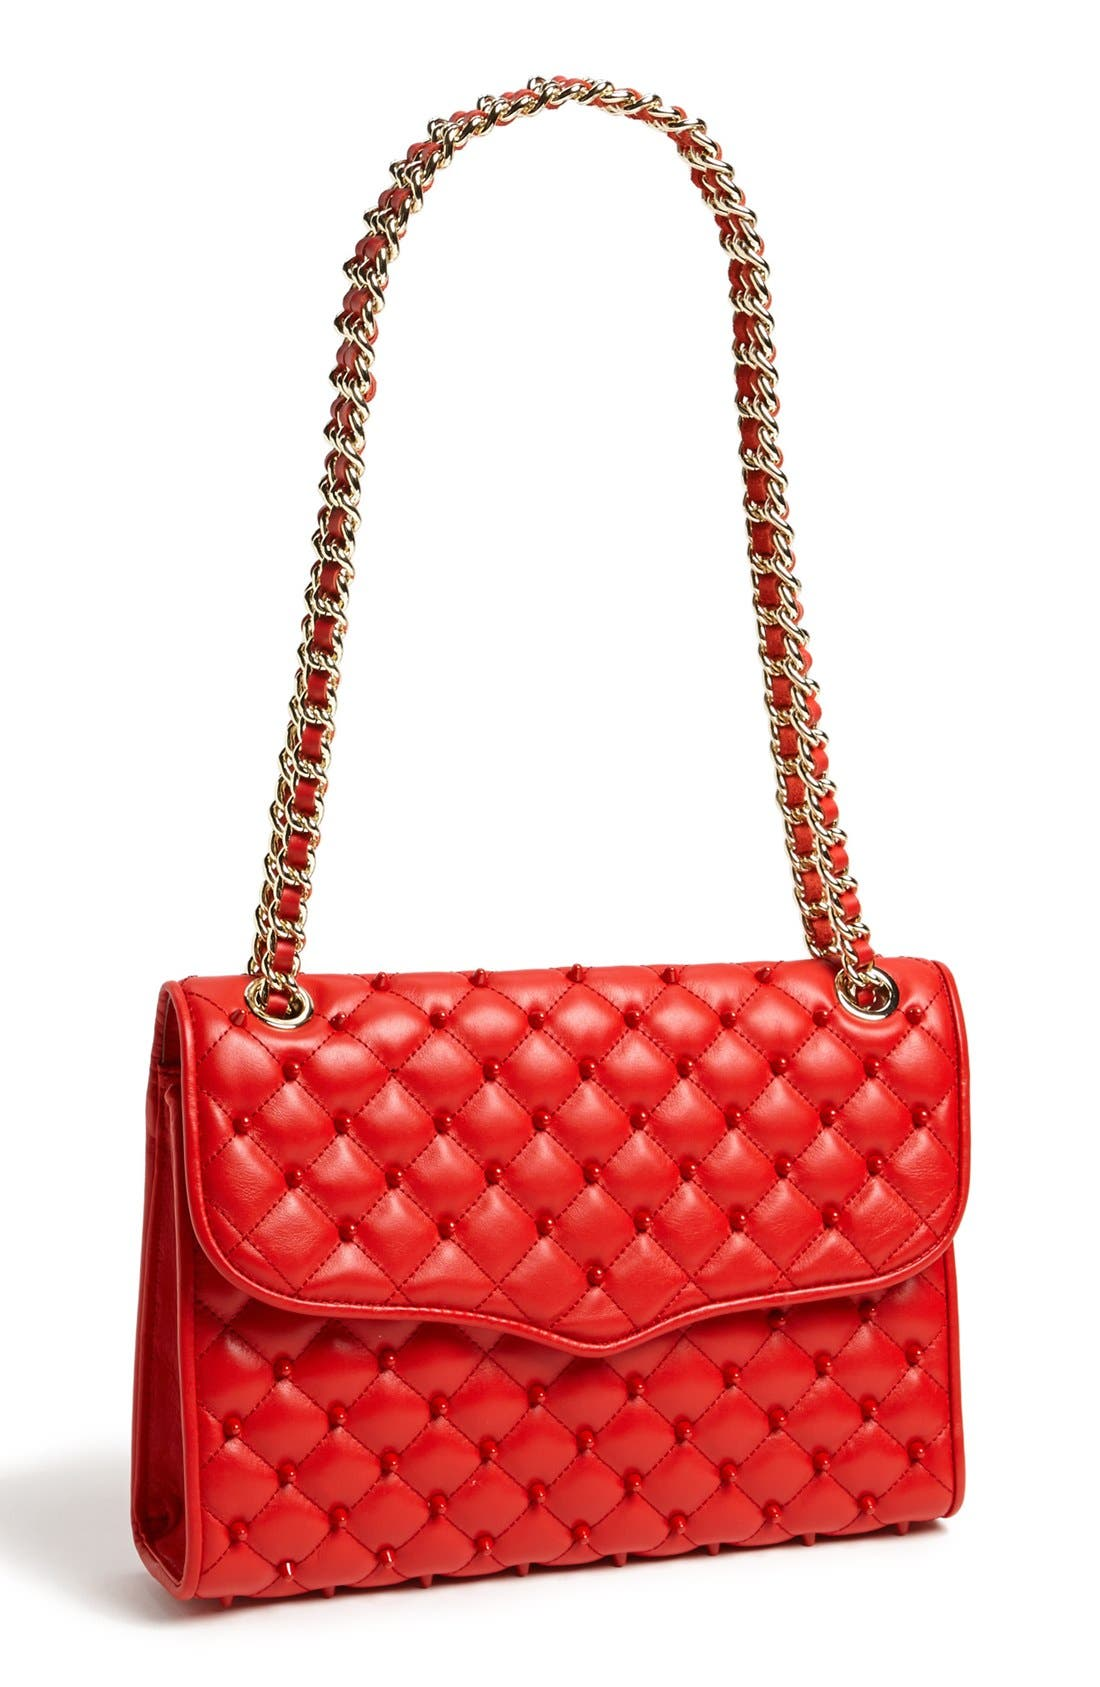 Main Image - Rebecca Minkoff 'Affair - Studded' Shoulder Bag